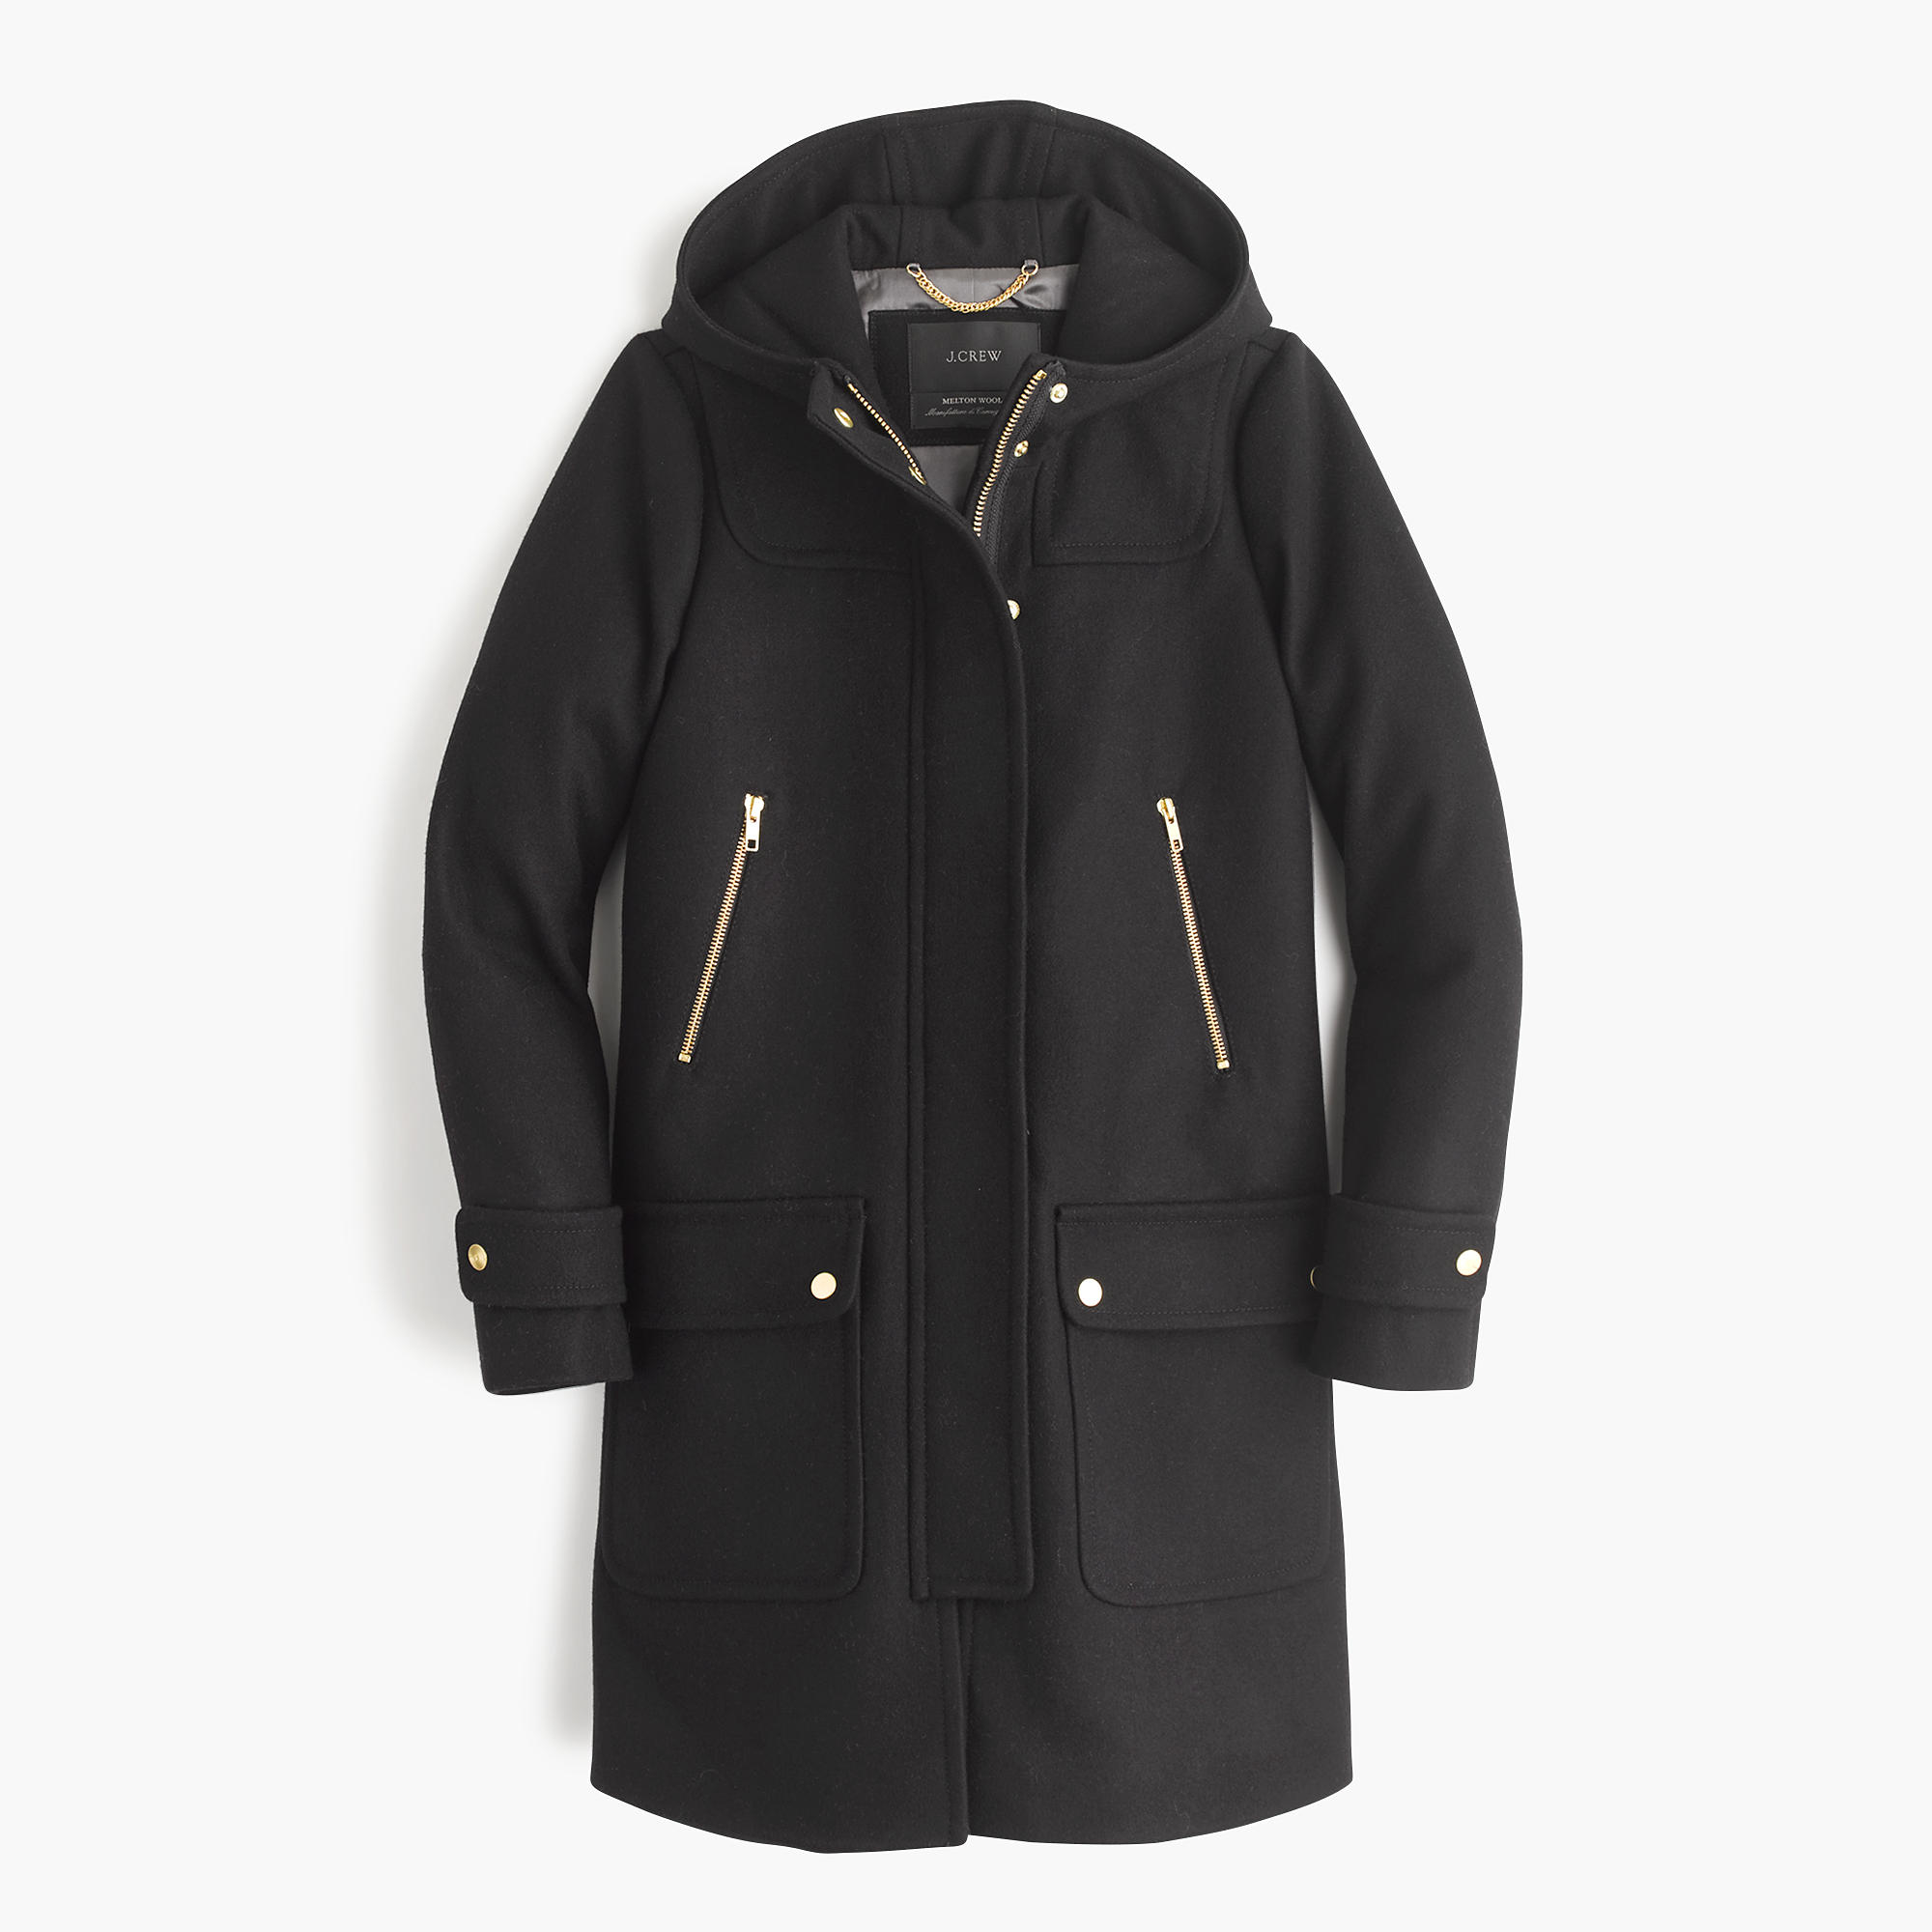 J.crew Petite Wool Melton Duffle Coat in Black | Lyst